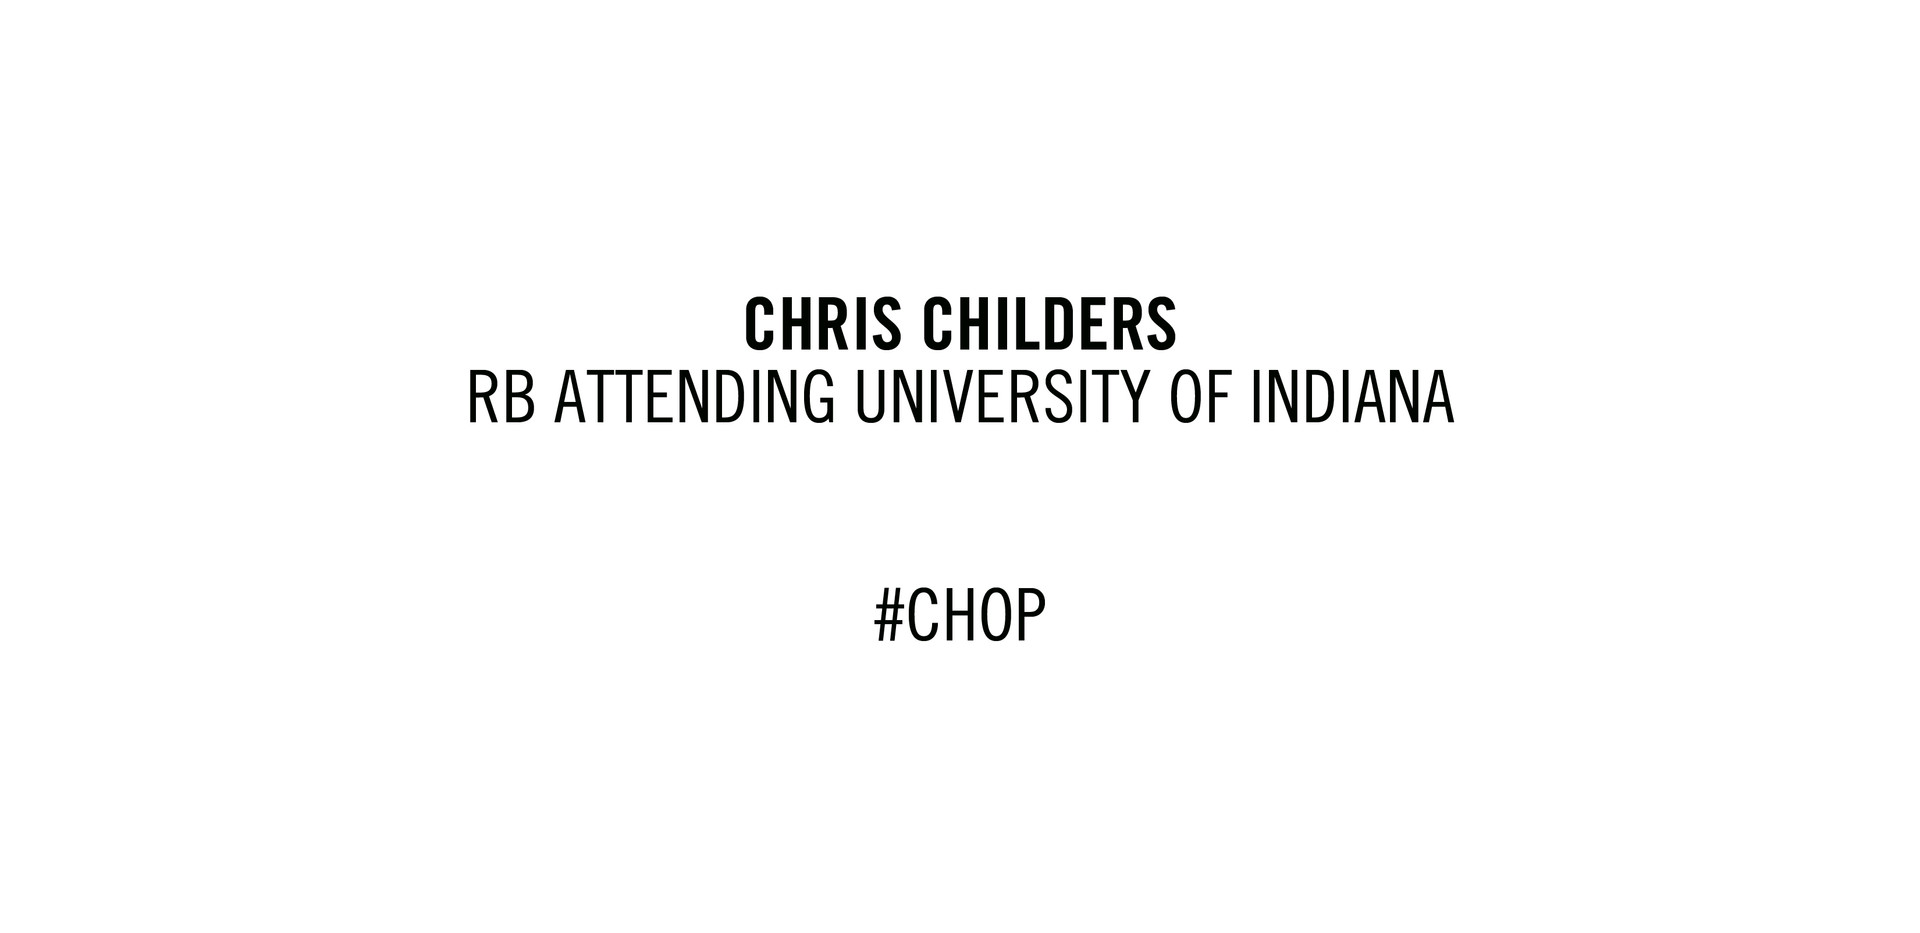 Chris Childers